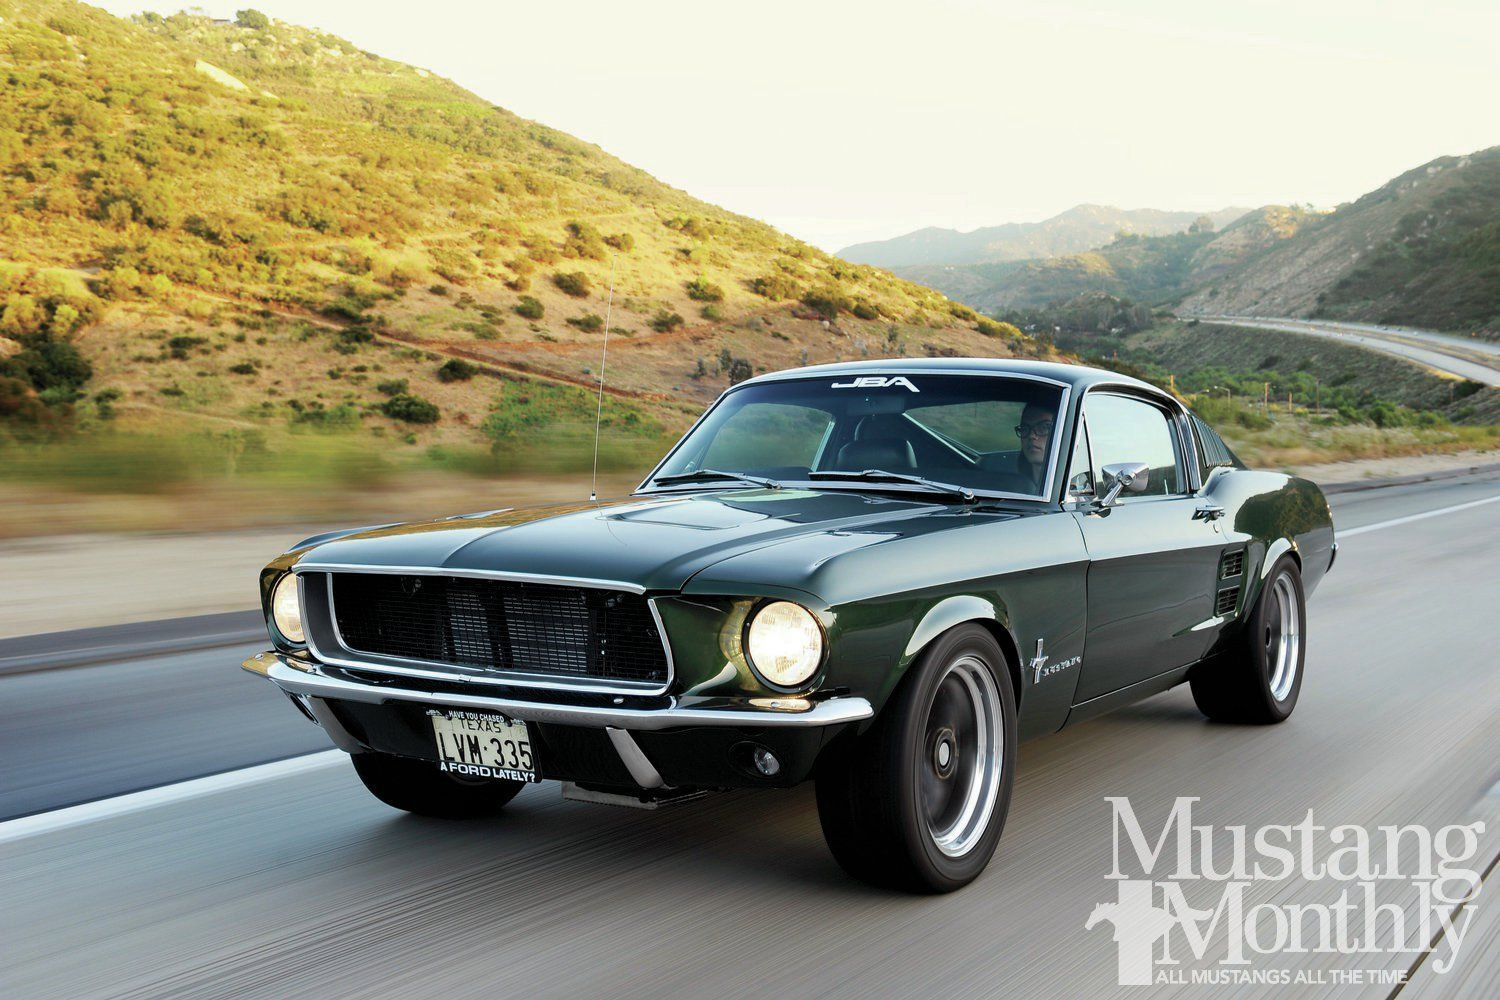 1967 ford mustang fastback http www theladbible com albums evening ladness 471 image 2d159252 7e4a 11e4 a47a d4ae52c74096 beautiful pics 3